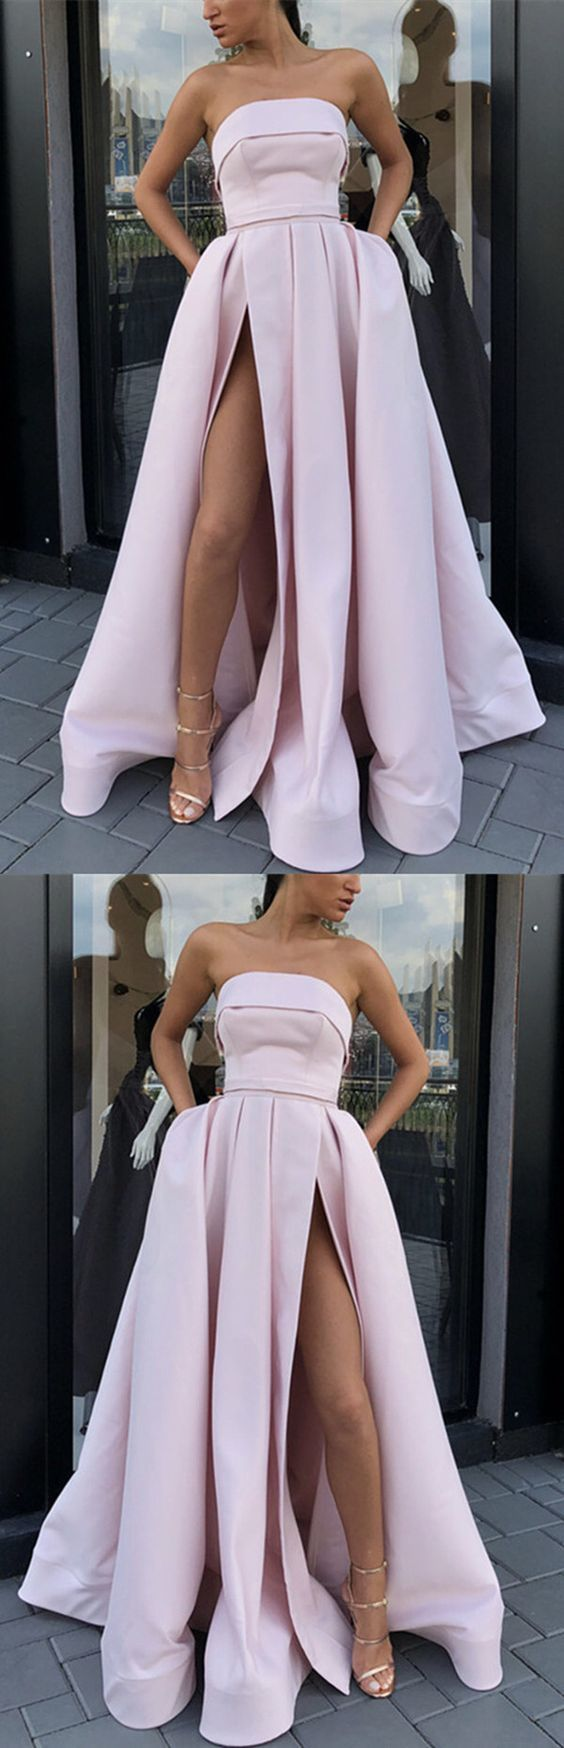 nude pink prom dresses strapless satin gowns